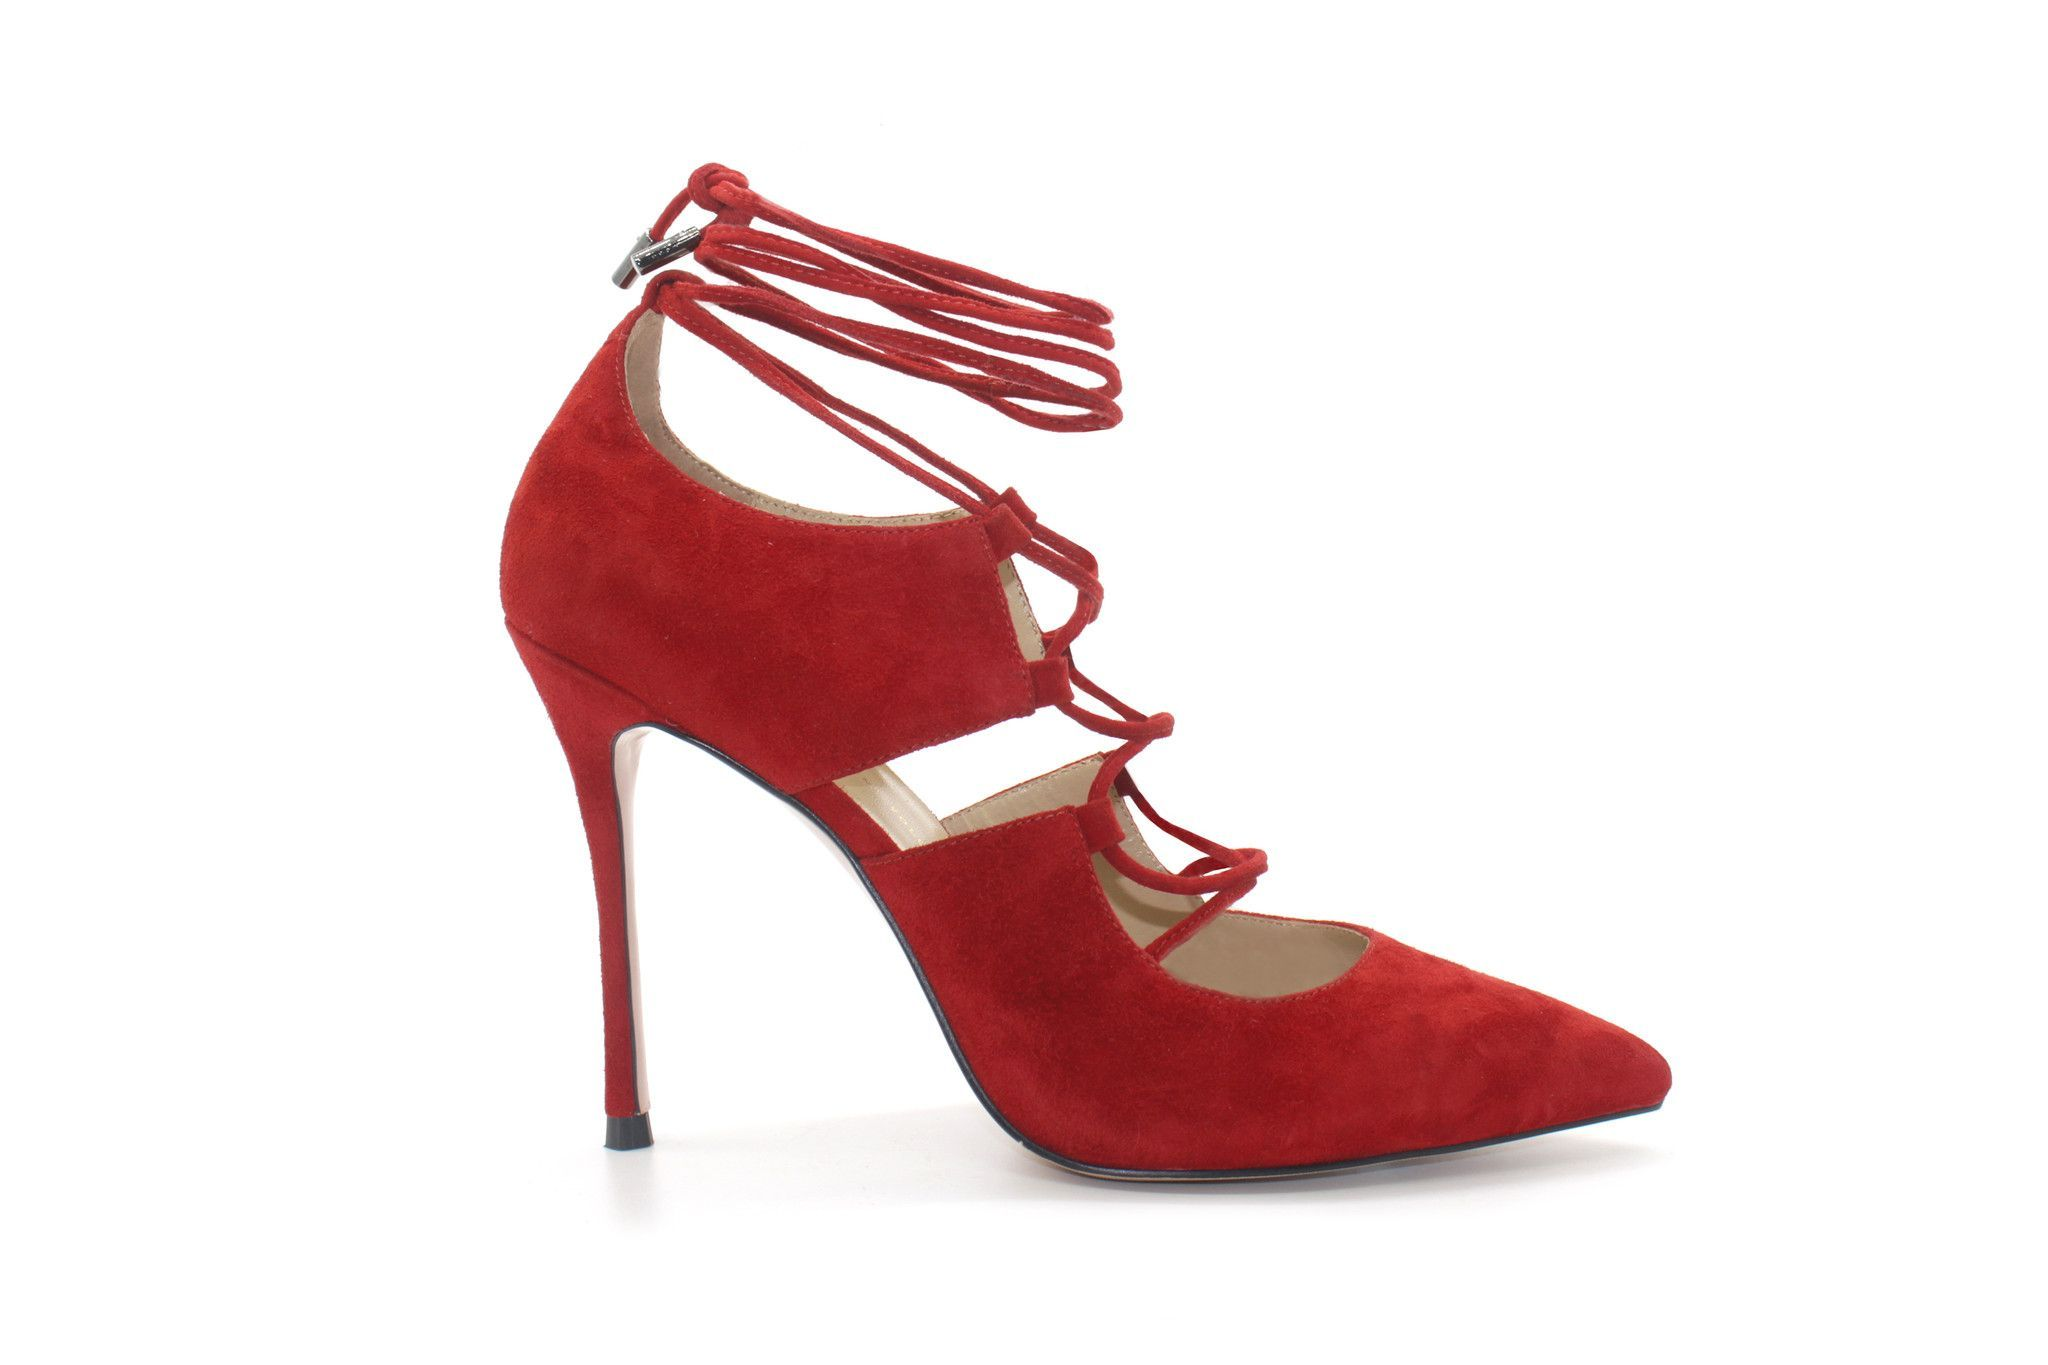 ffa9effa992 4 Inch Heels - Classic Red Suede Strappy High Heel Pumps